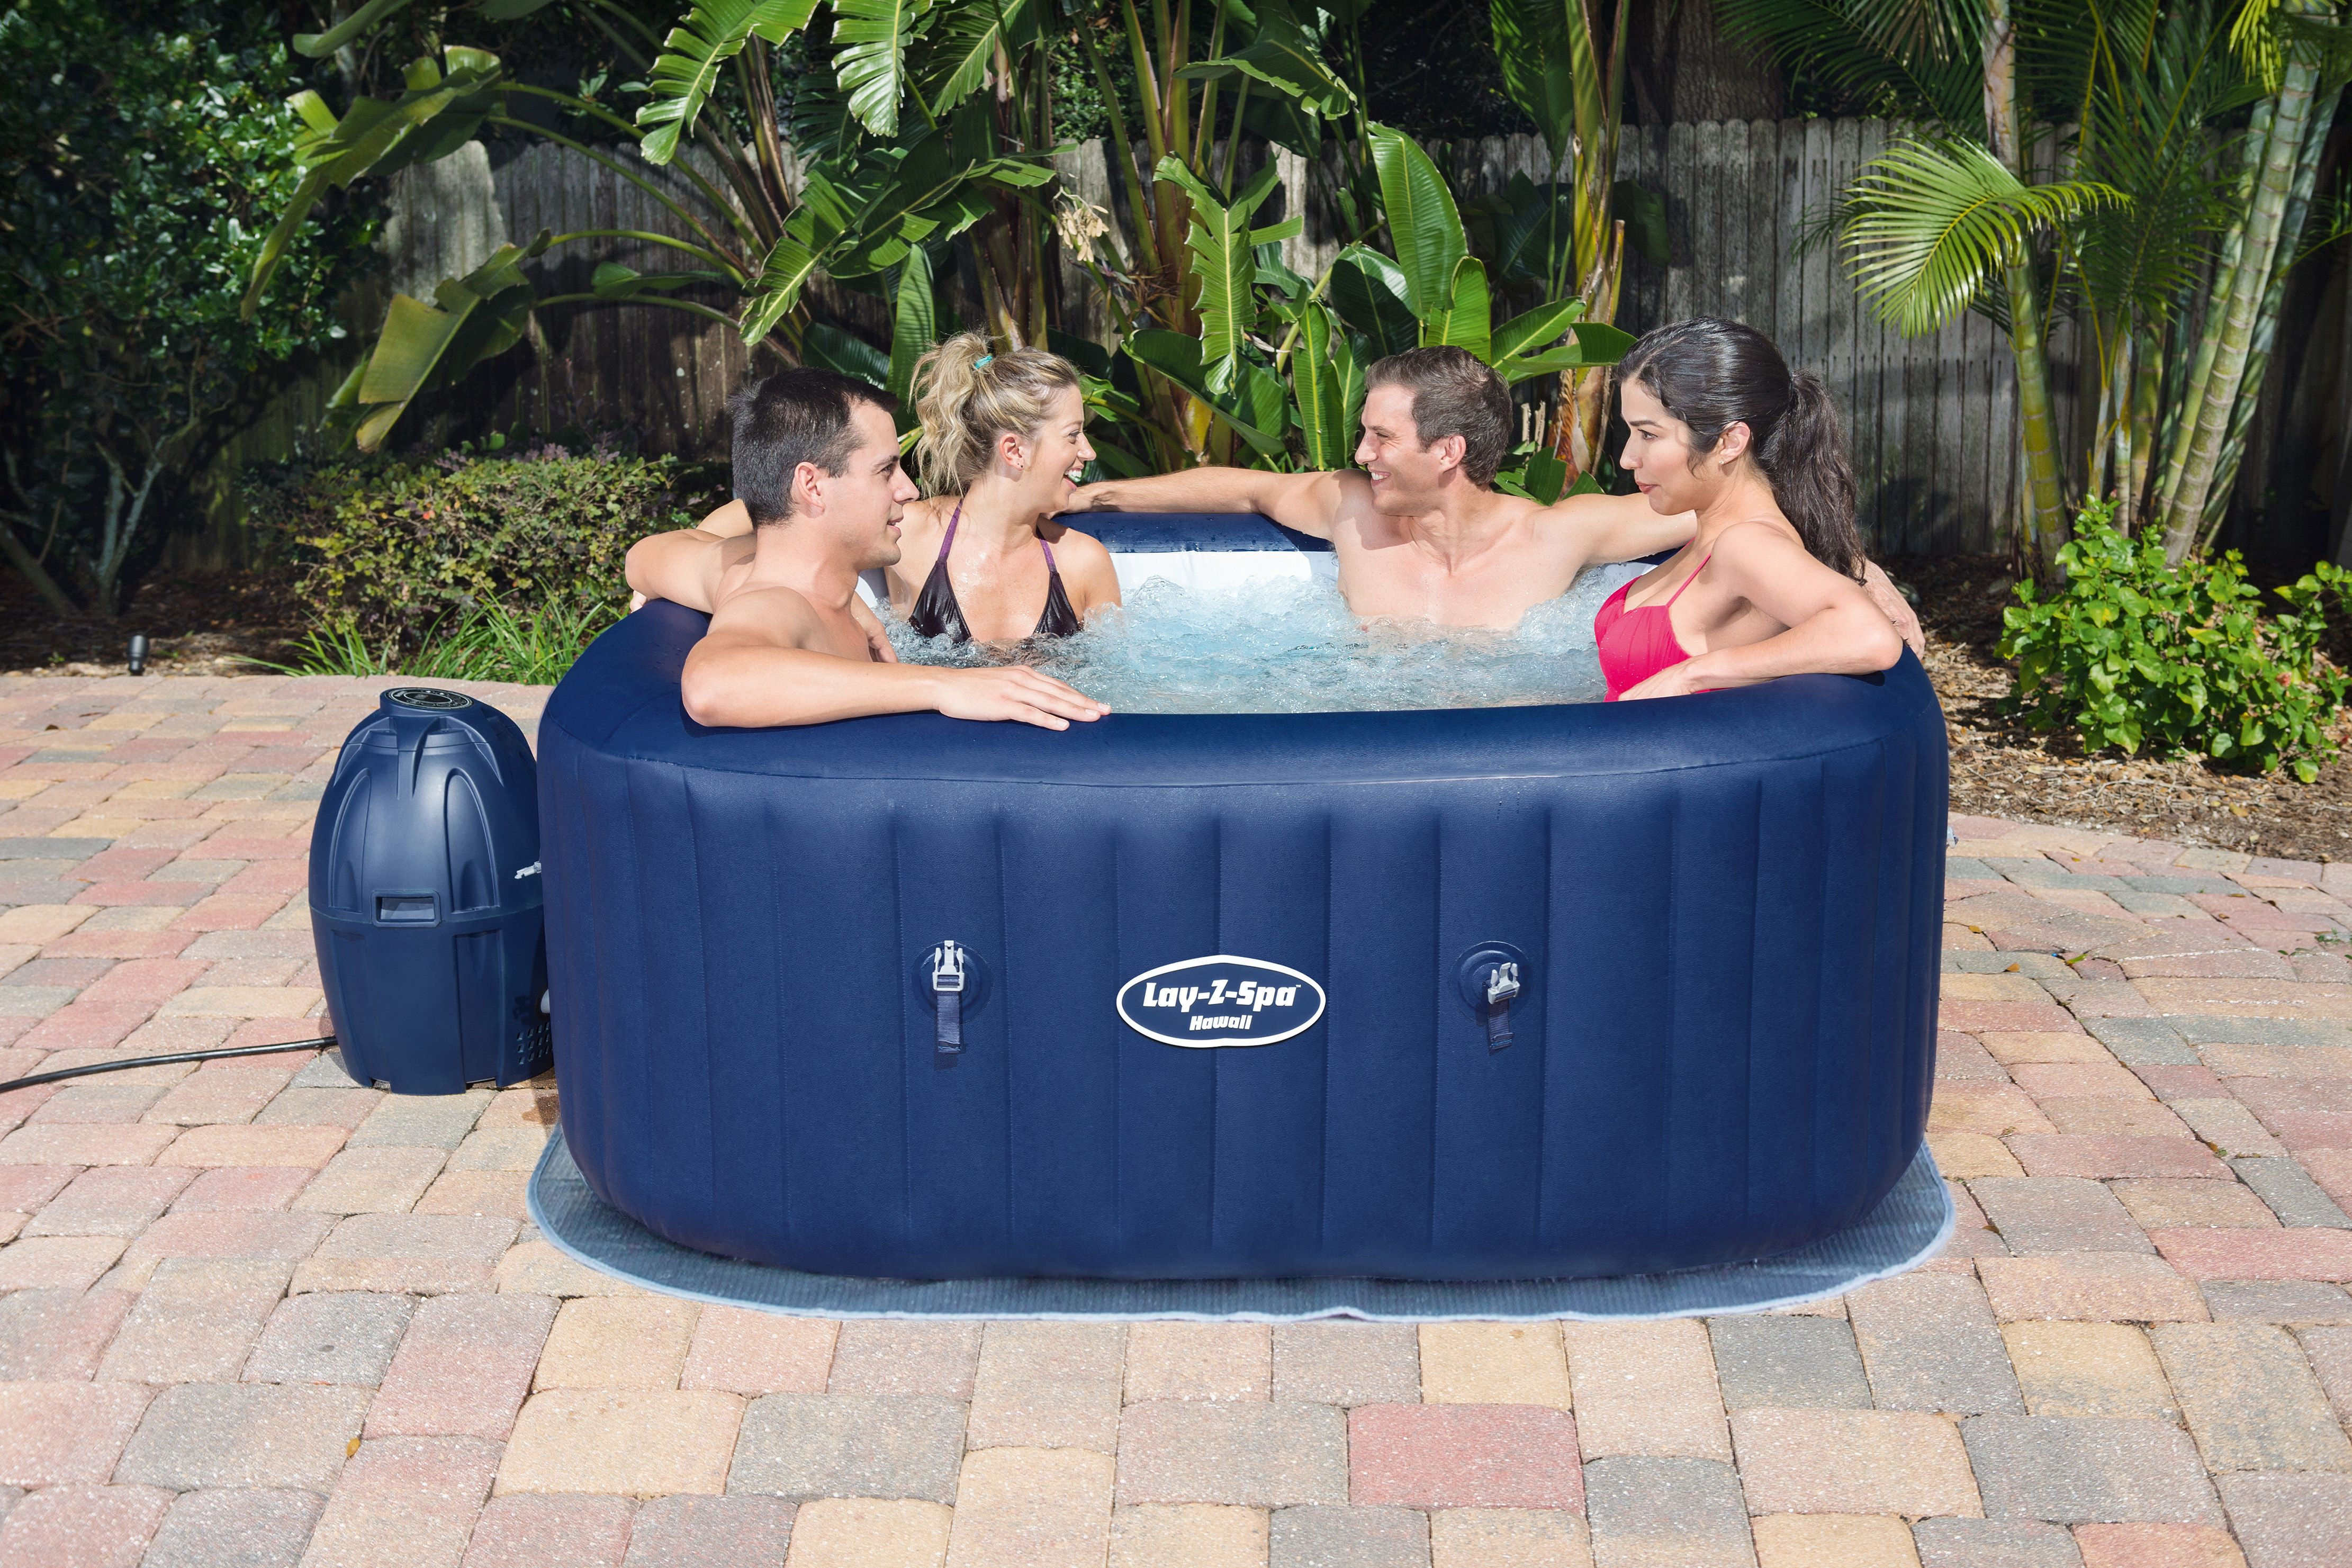 Hawaii 6 Person Inflatable Cols Spa Hot Tub Square Family Spa Tubs